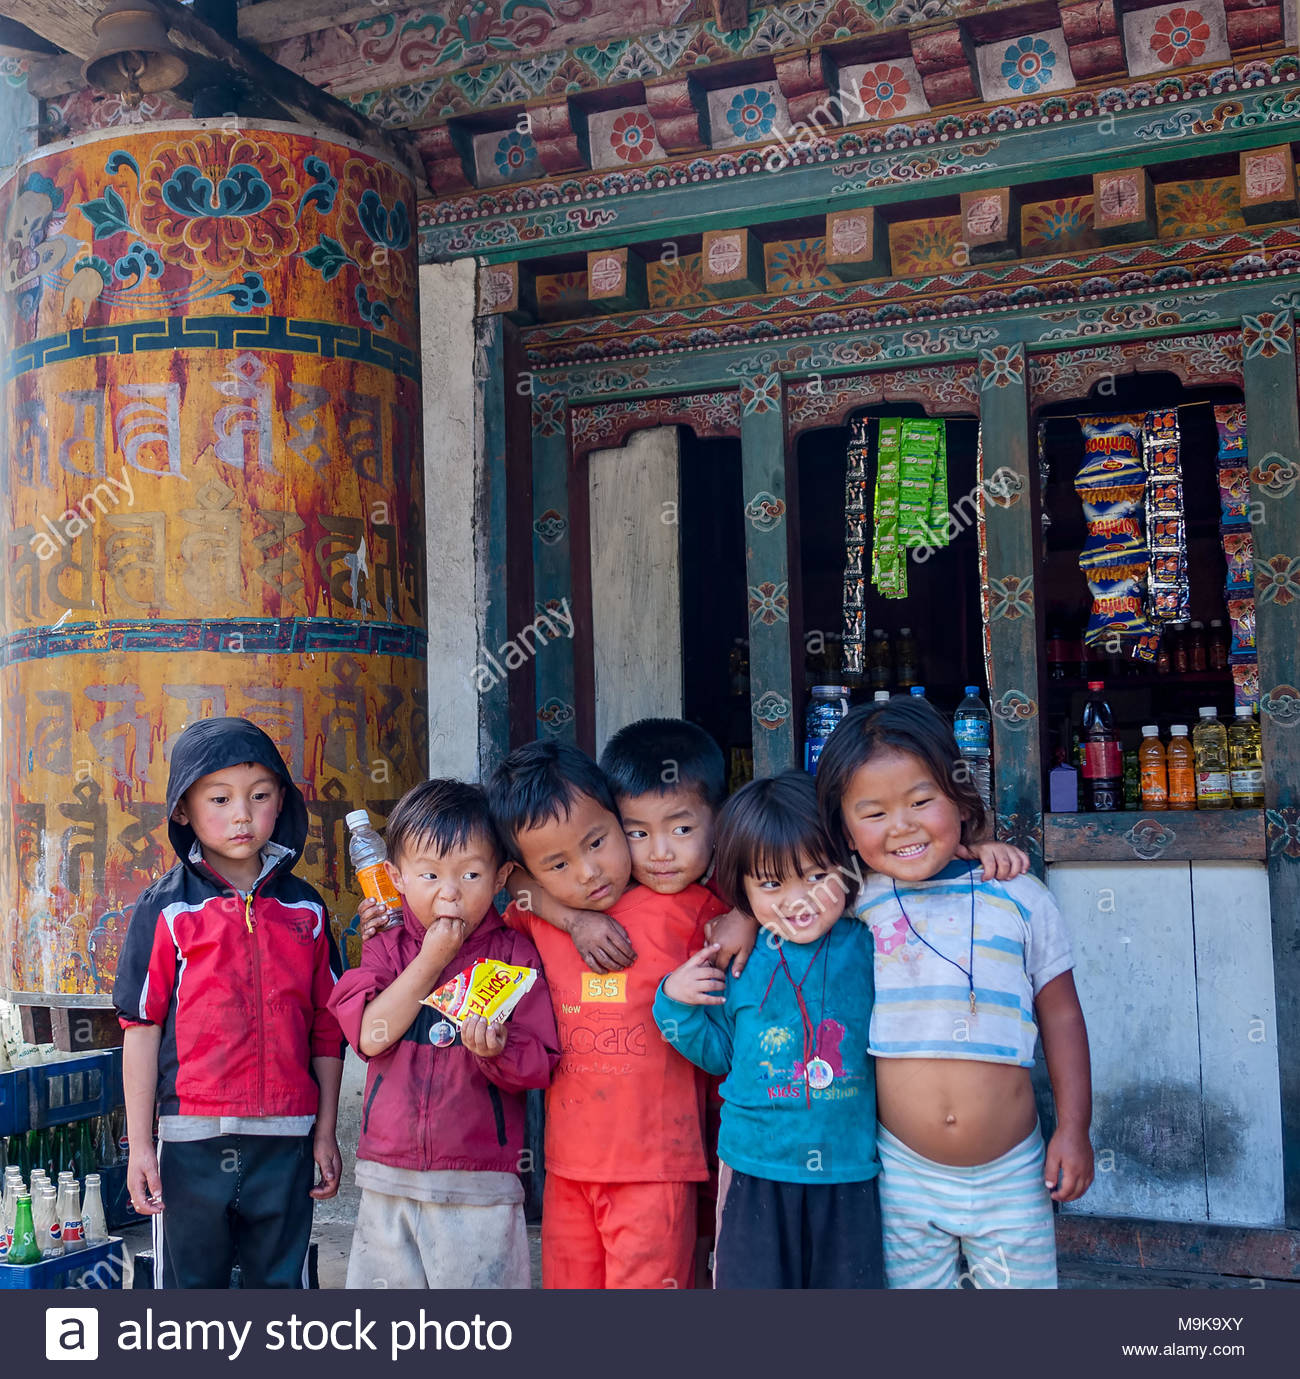 Group of Bhutanese children - Eastern Bhutan - Stock Image